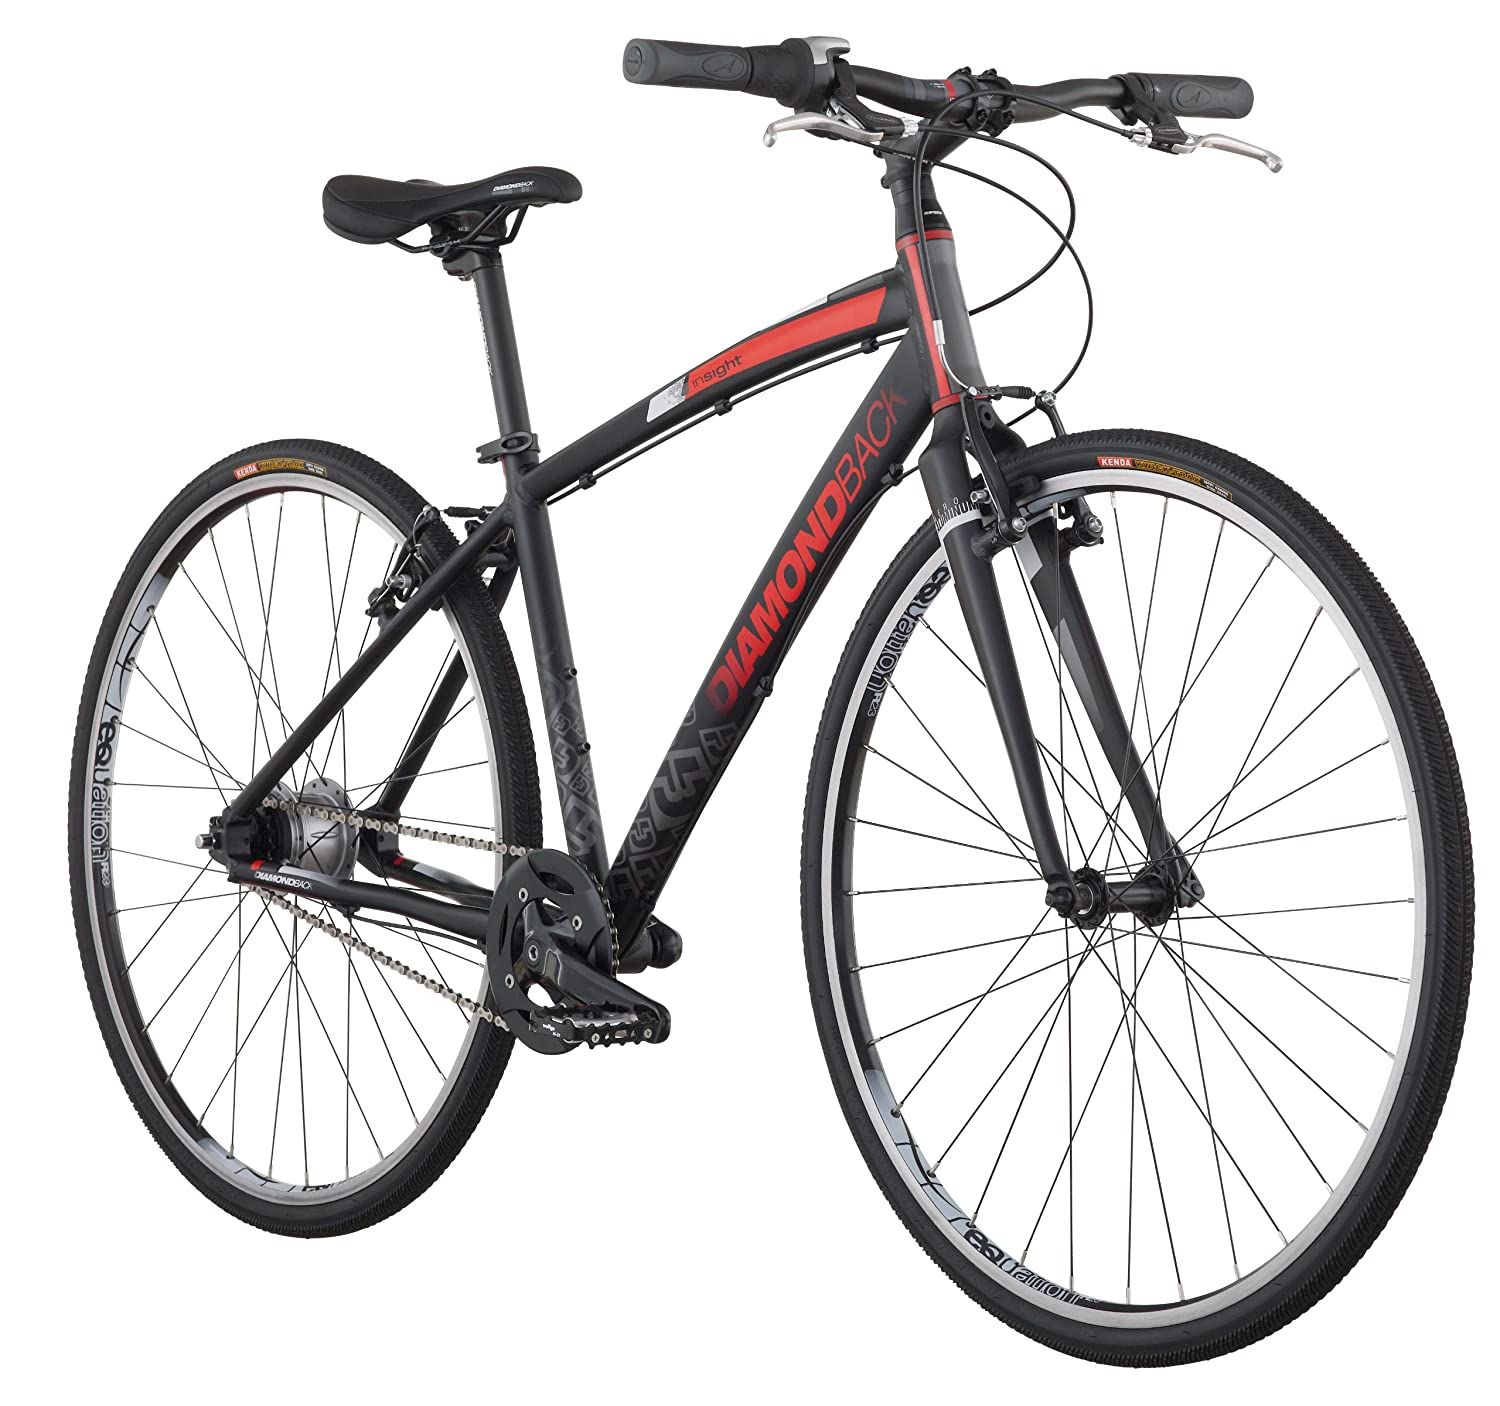 Bike Hybrid Best Performance Hybrid Bike